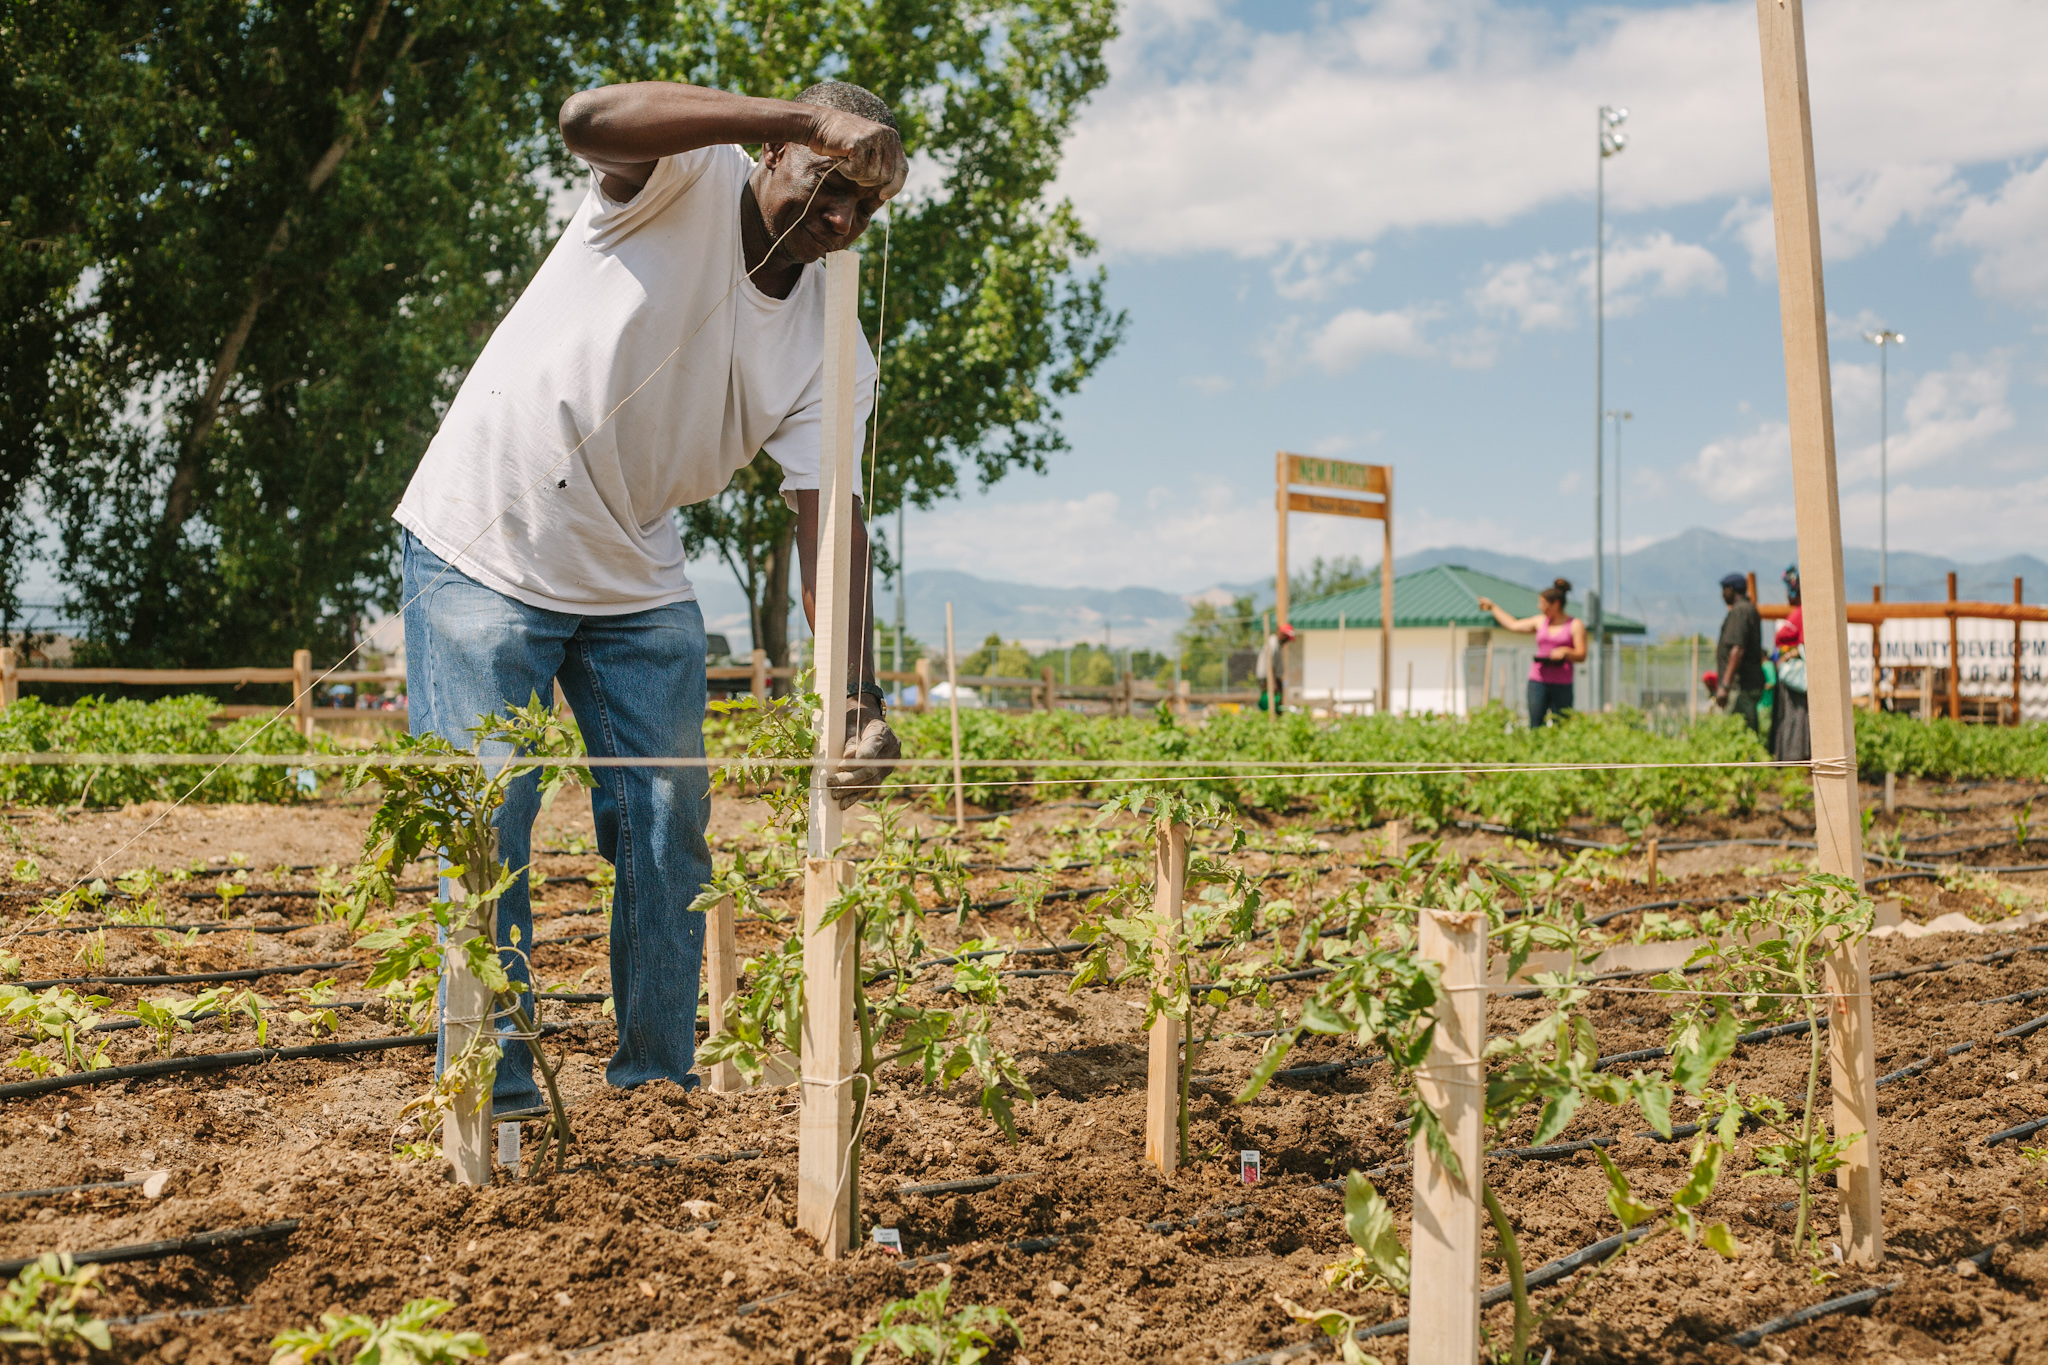 The IRC's   New Roots program works with Salt Lake City refugee communities   to increase food access and provide technical   training. Participants operate a small-scale urban farm, supplying numerous local restaurants and farm stands with produce.